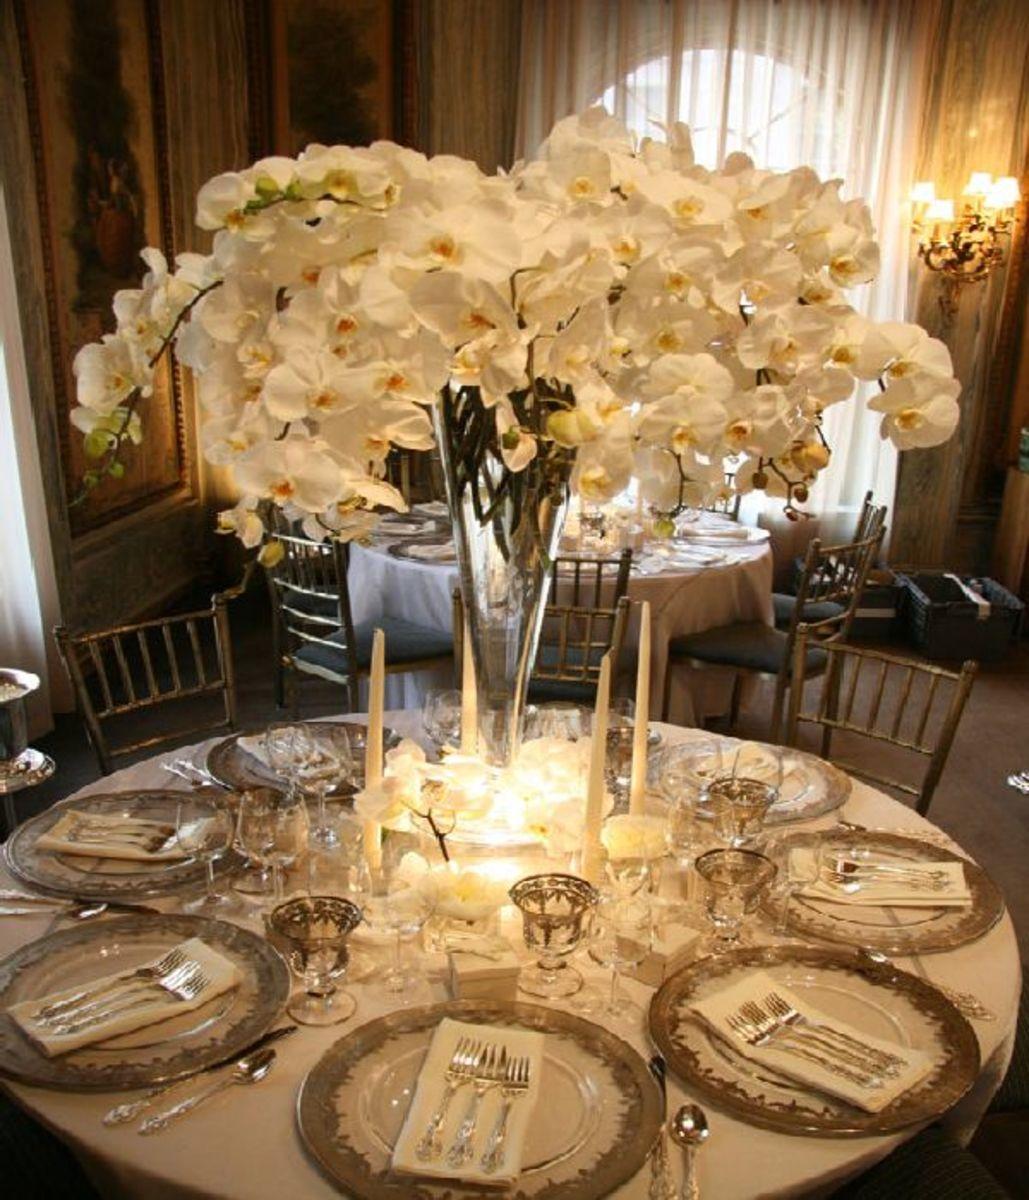 20 photos of wedding table d cor ideas creative table for Wedding table decoration ideas